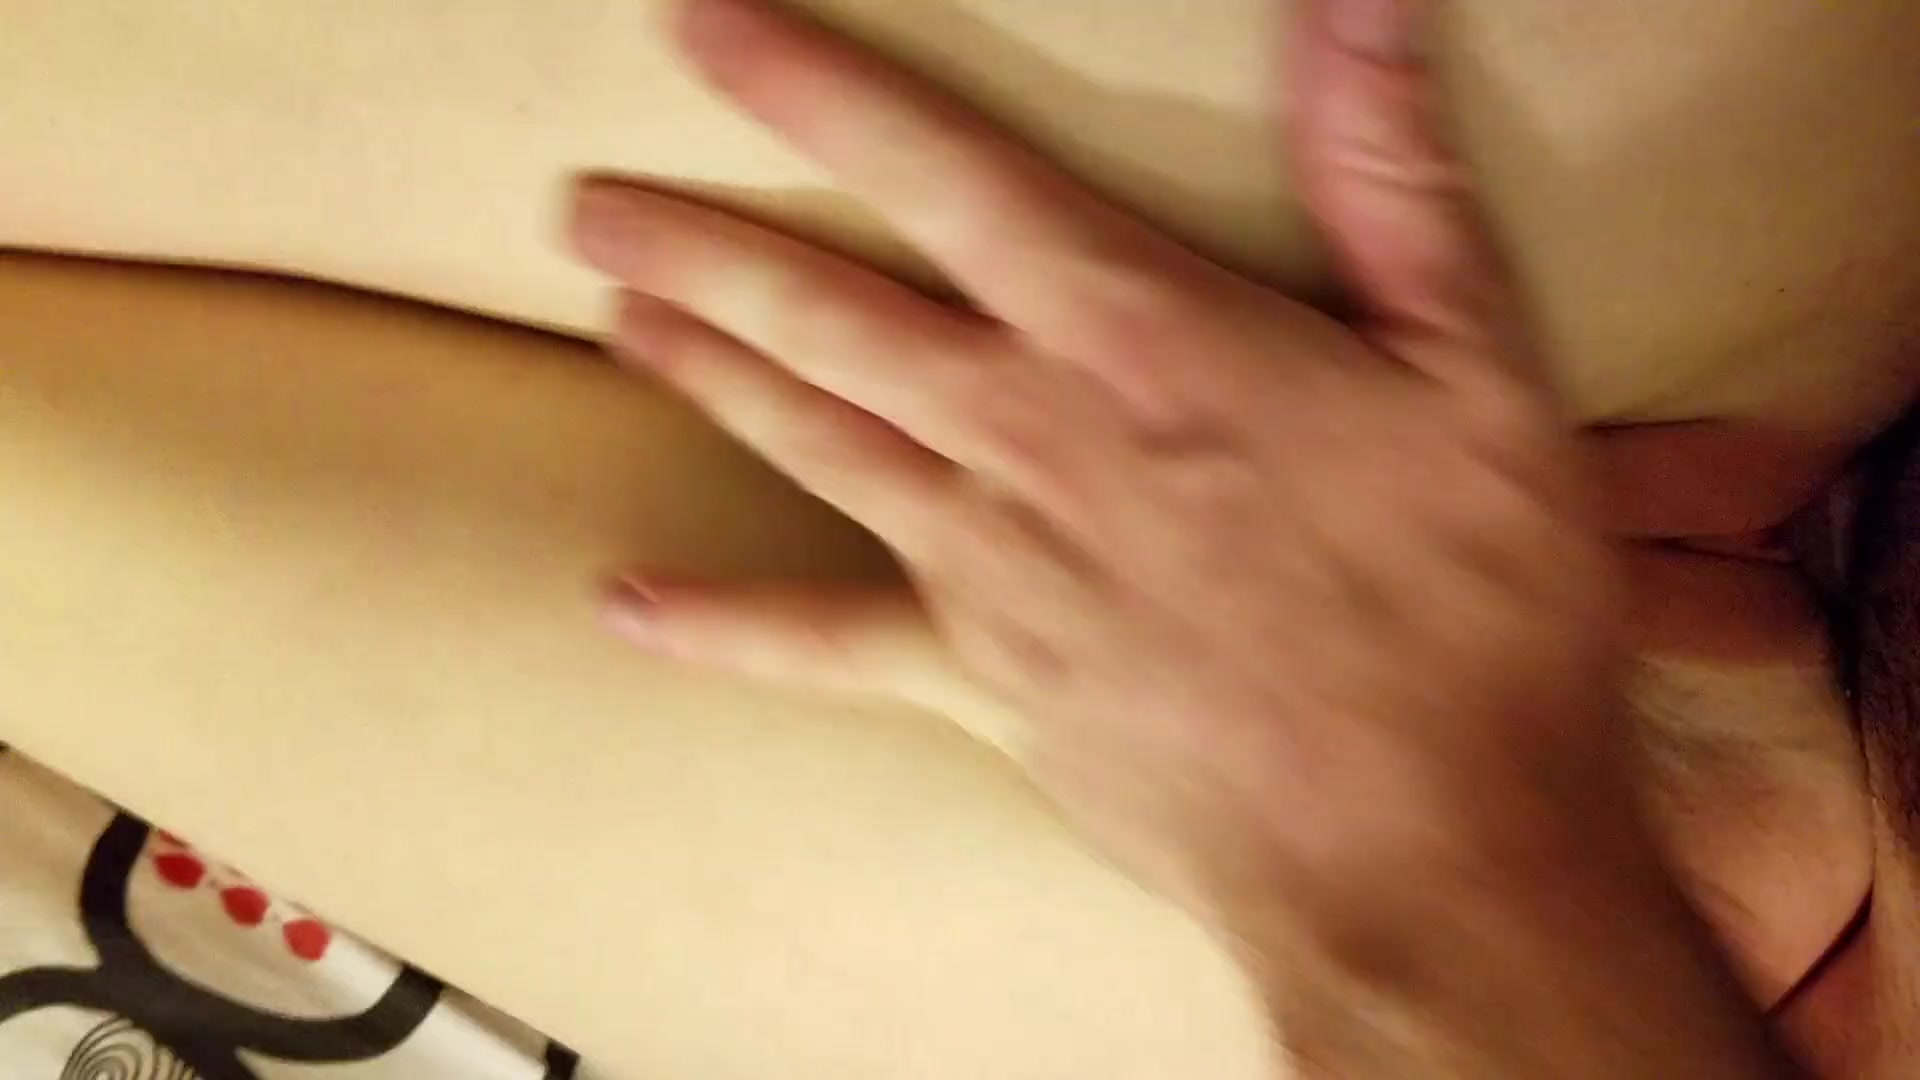 See big 3gp adult clip mp4 hands